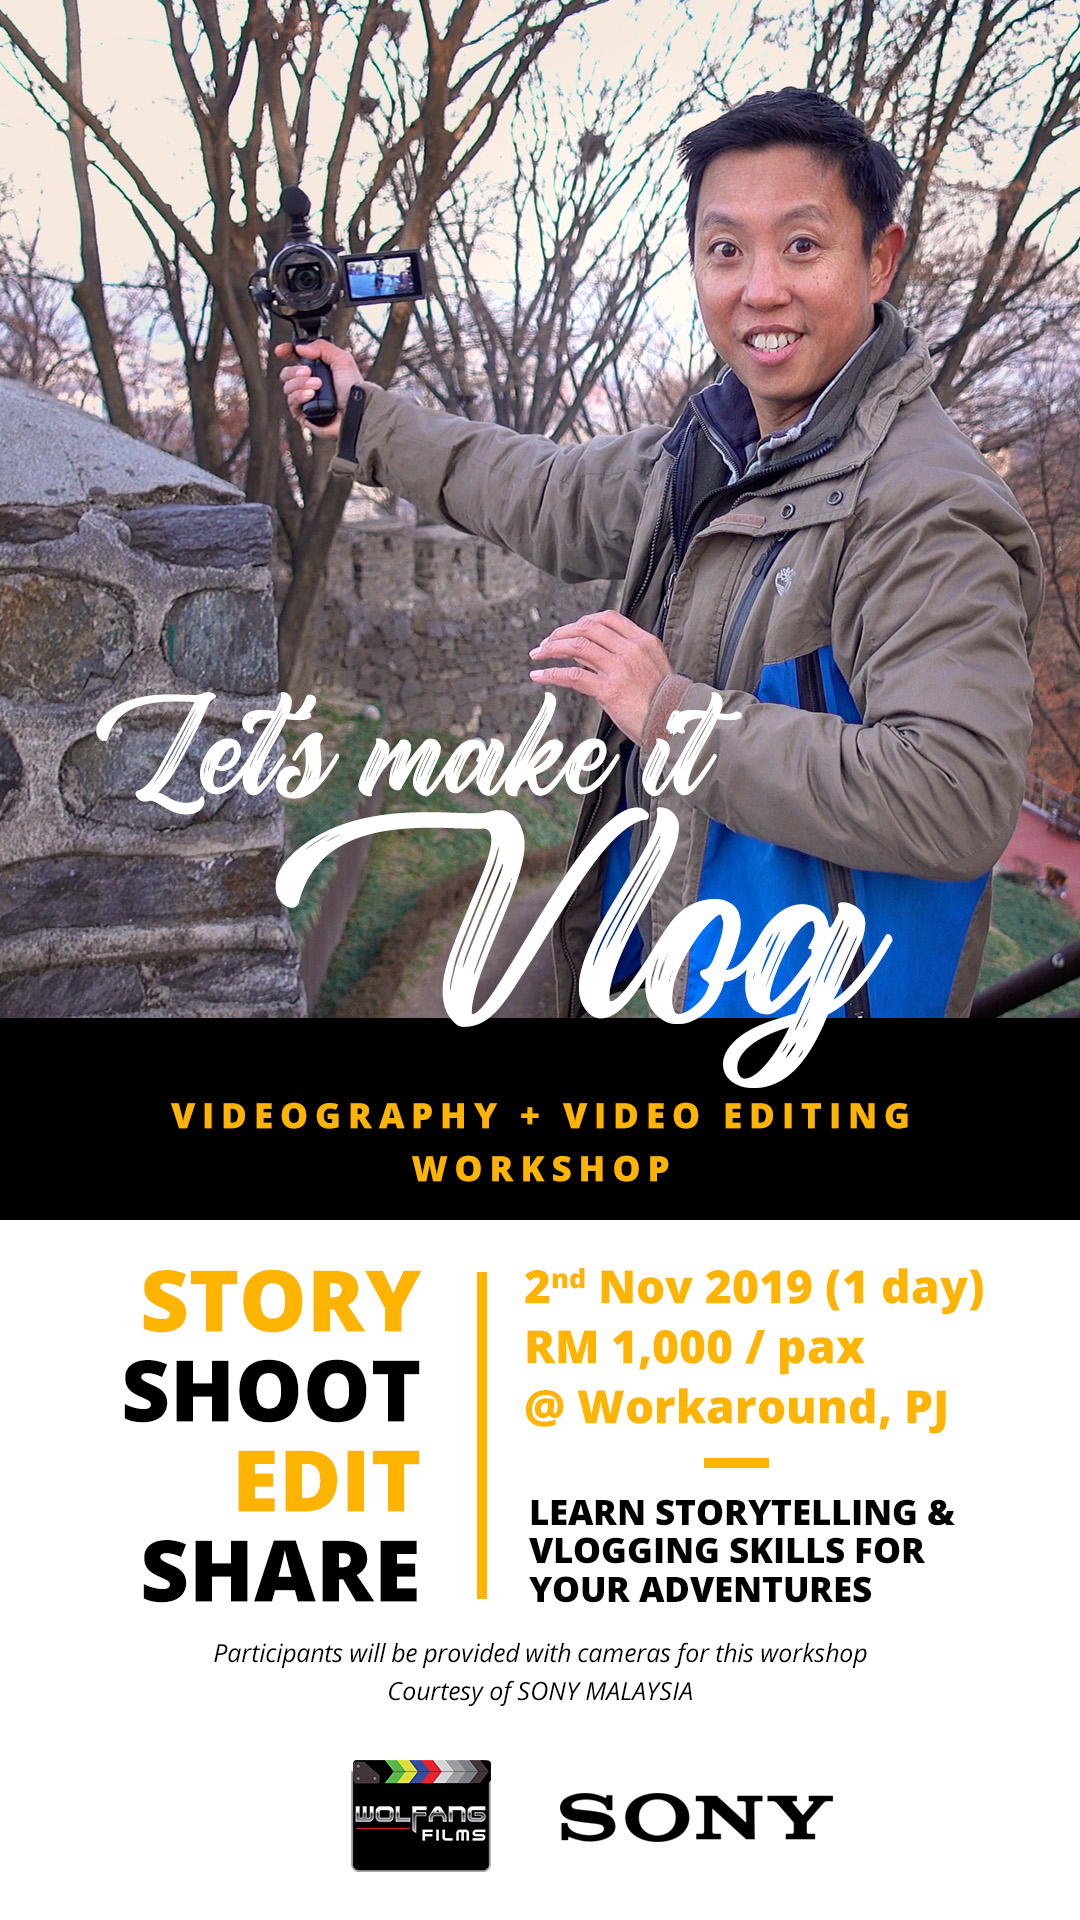 How to make YouTube videos, vlog, vlogging workshop by Baron Abas